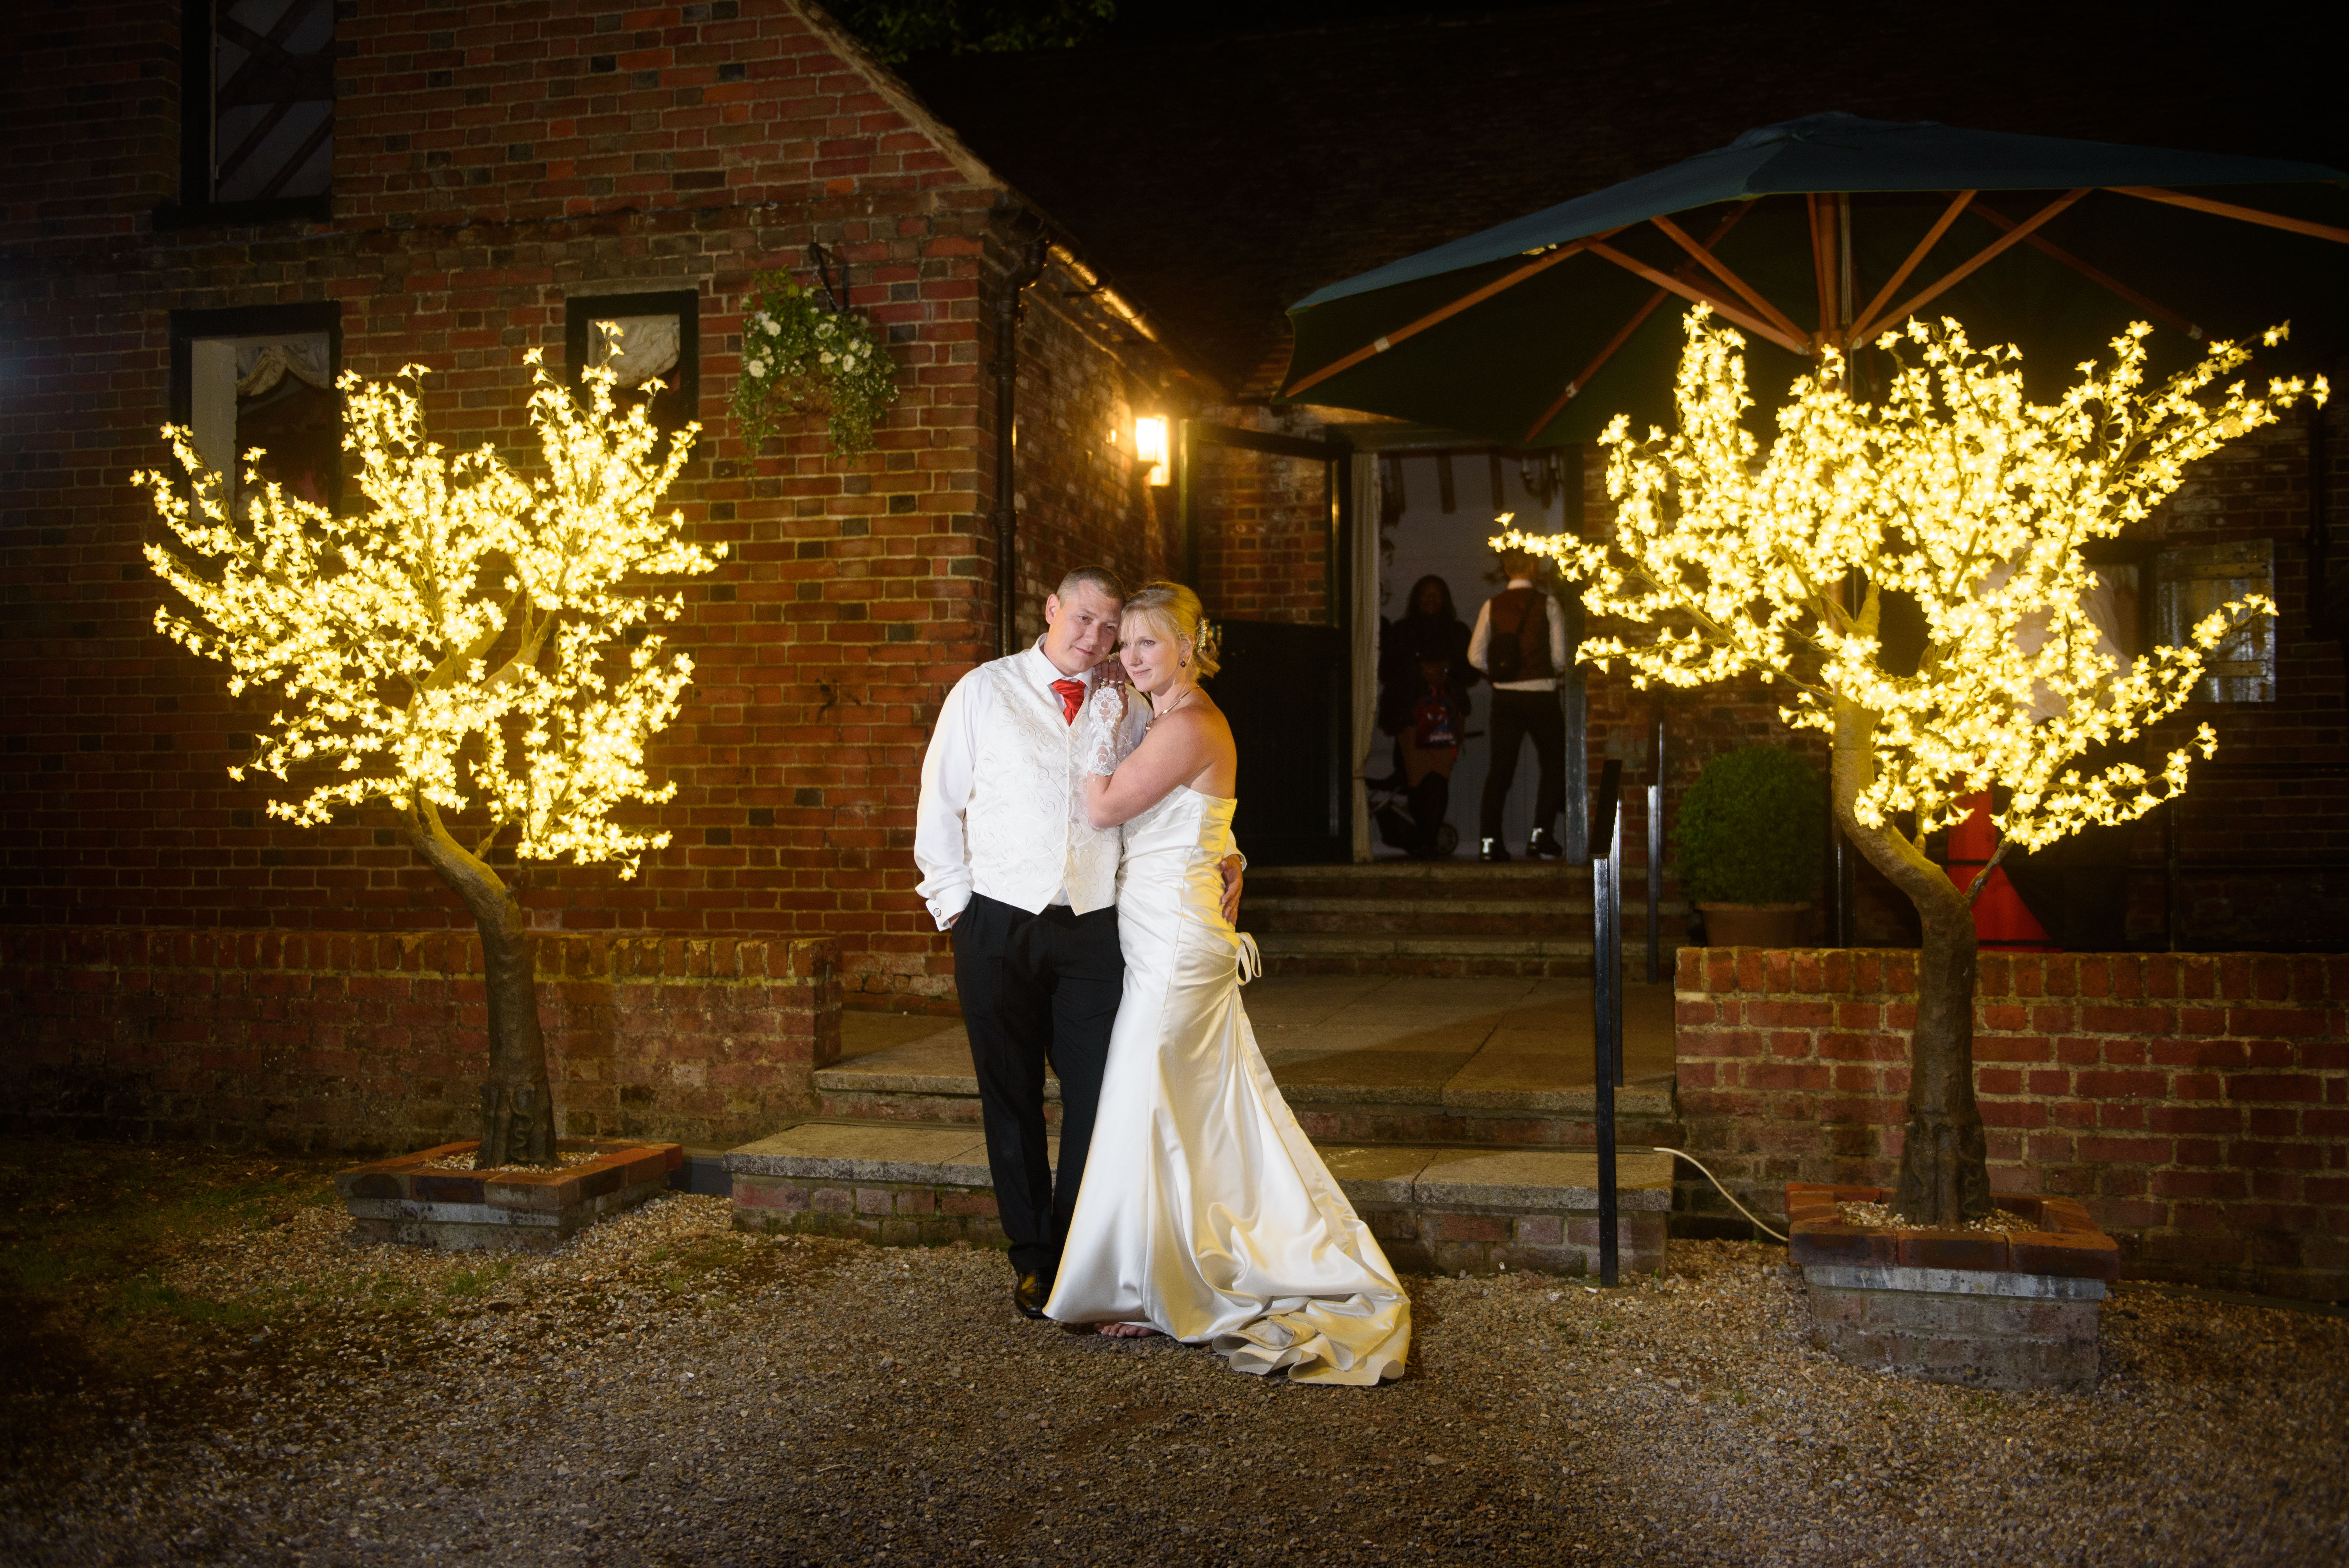 Why we love Christmas weddings…